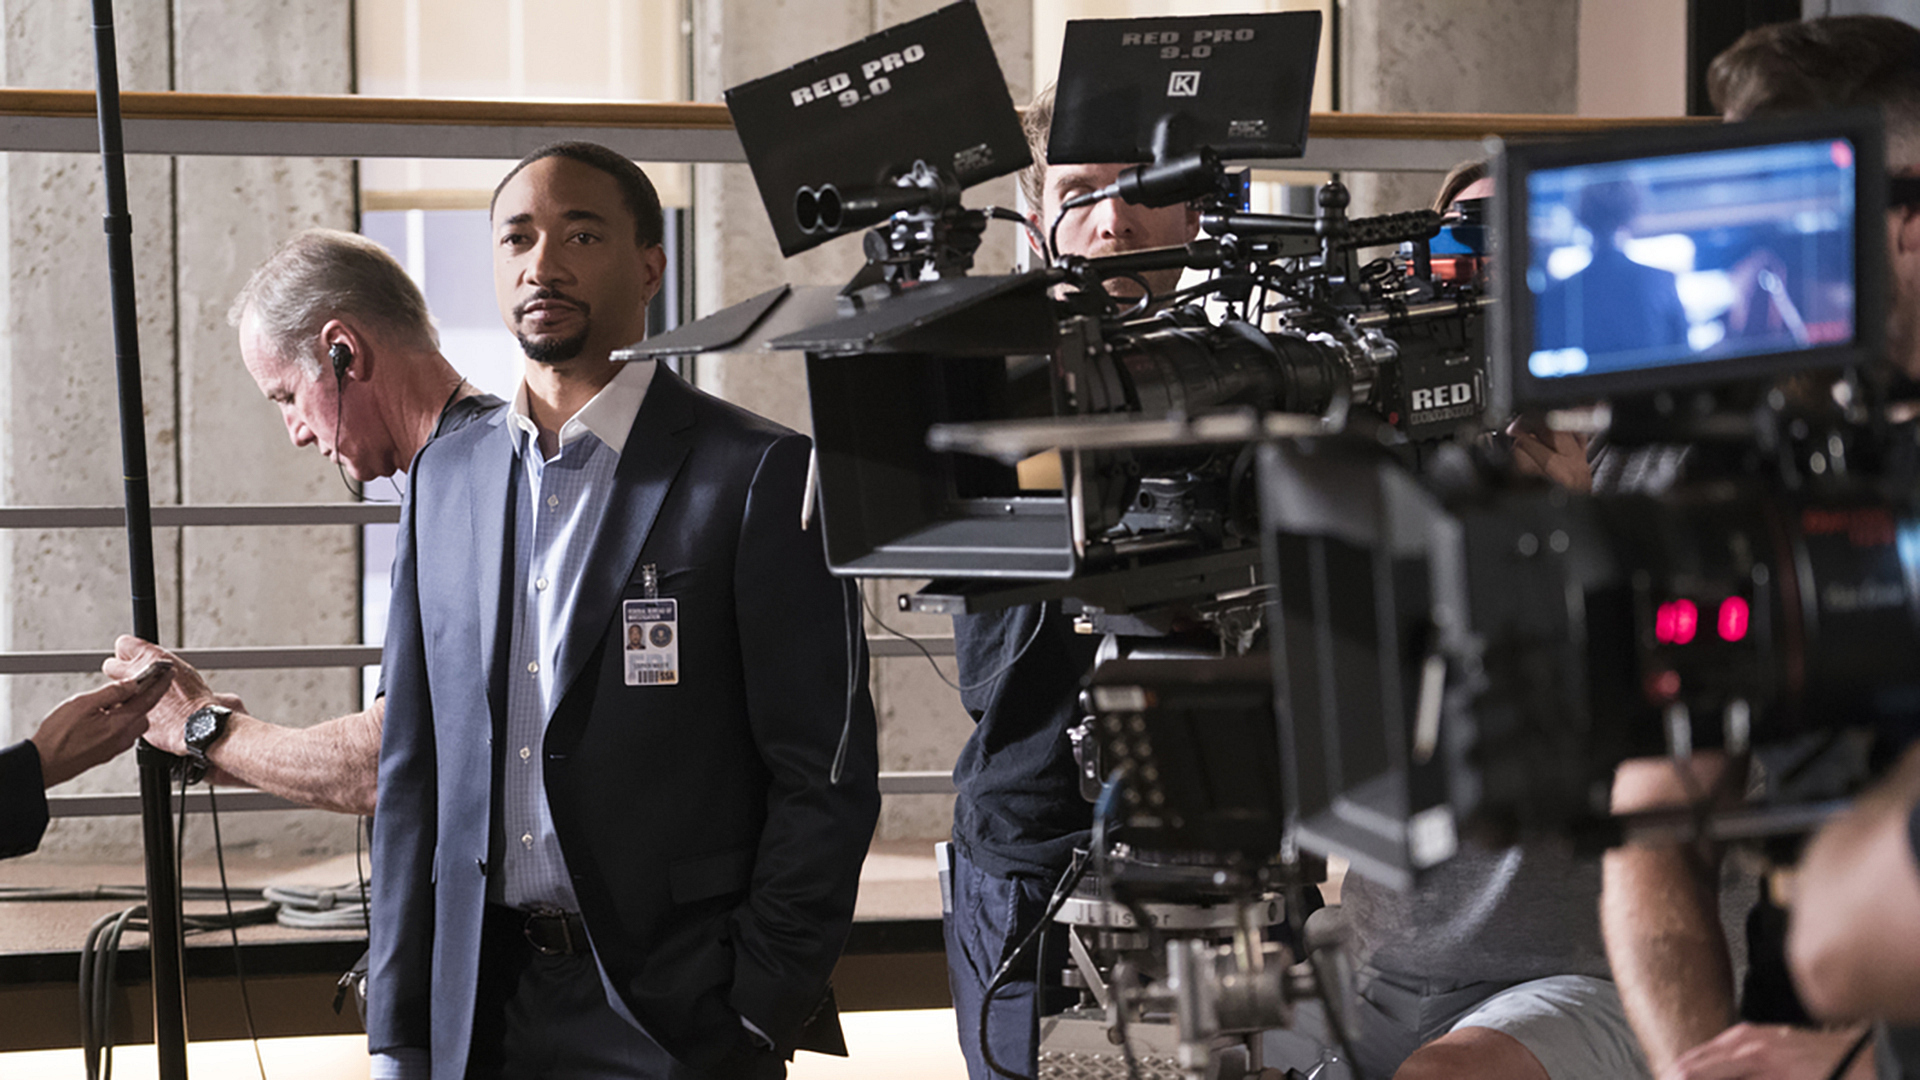 Damon Gupton prepares for filming at the BAU.